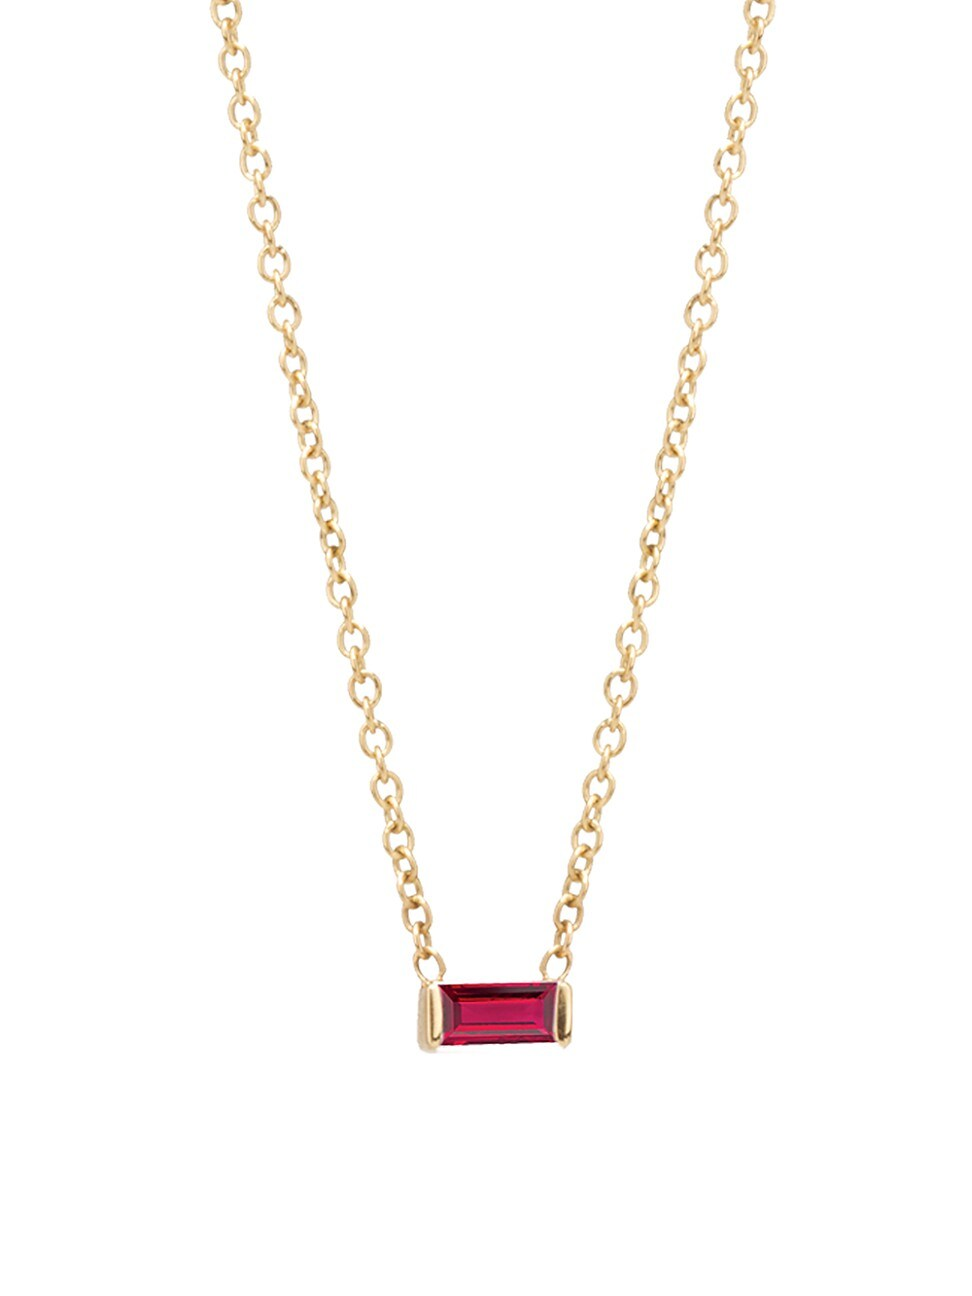 Zoë Chicco Women's Birthstones 14k Yellow Gold & Ruby Horizontal Baguette Necklace